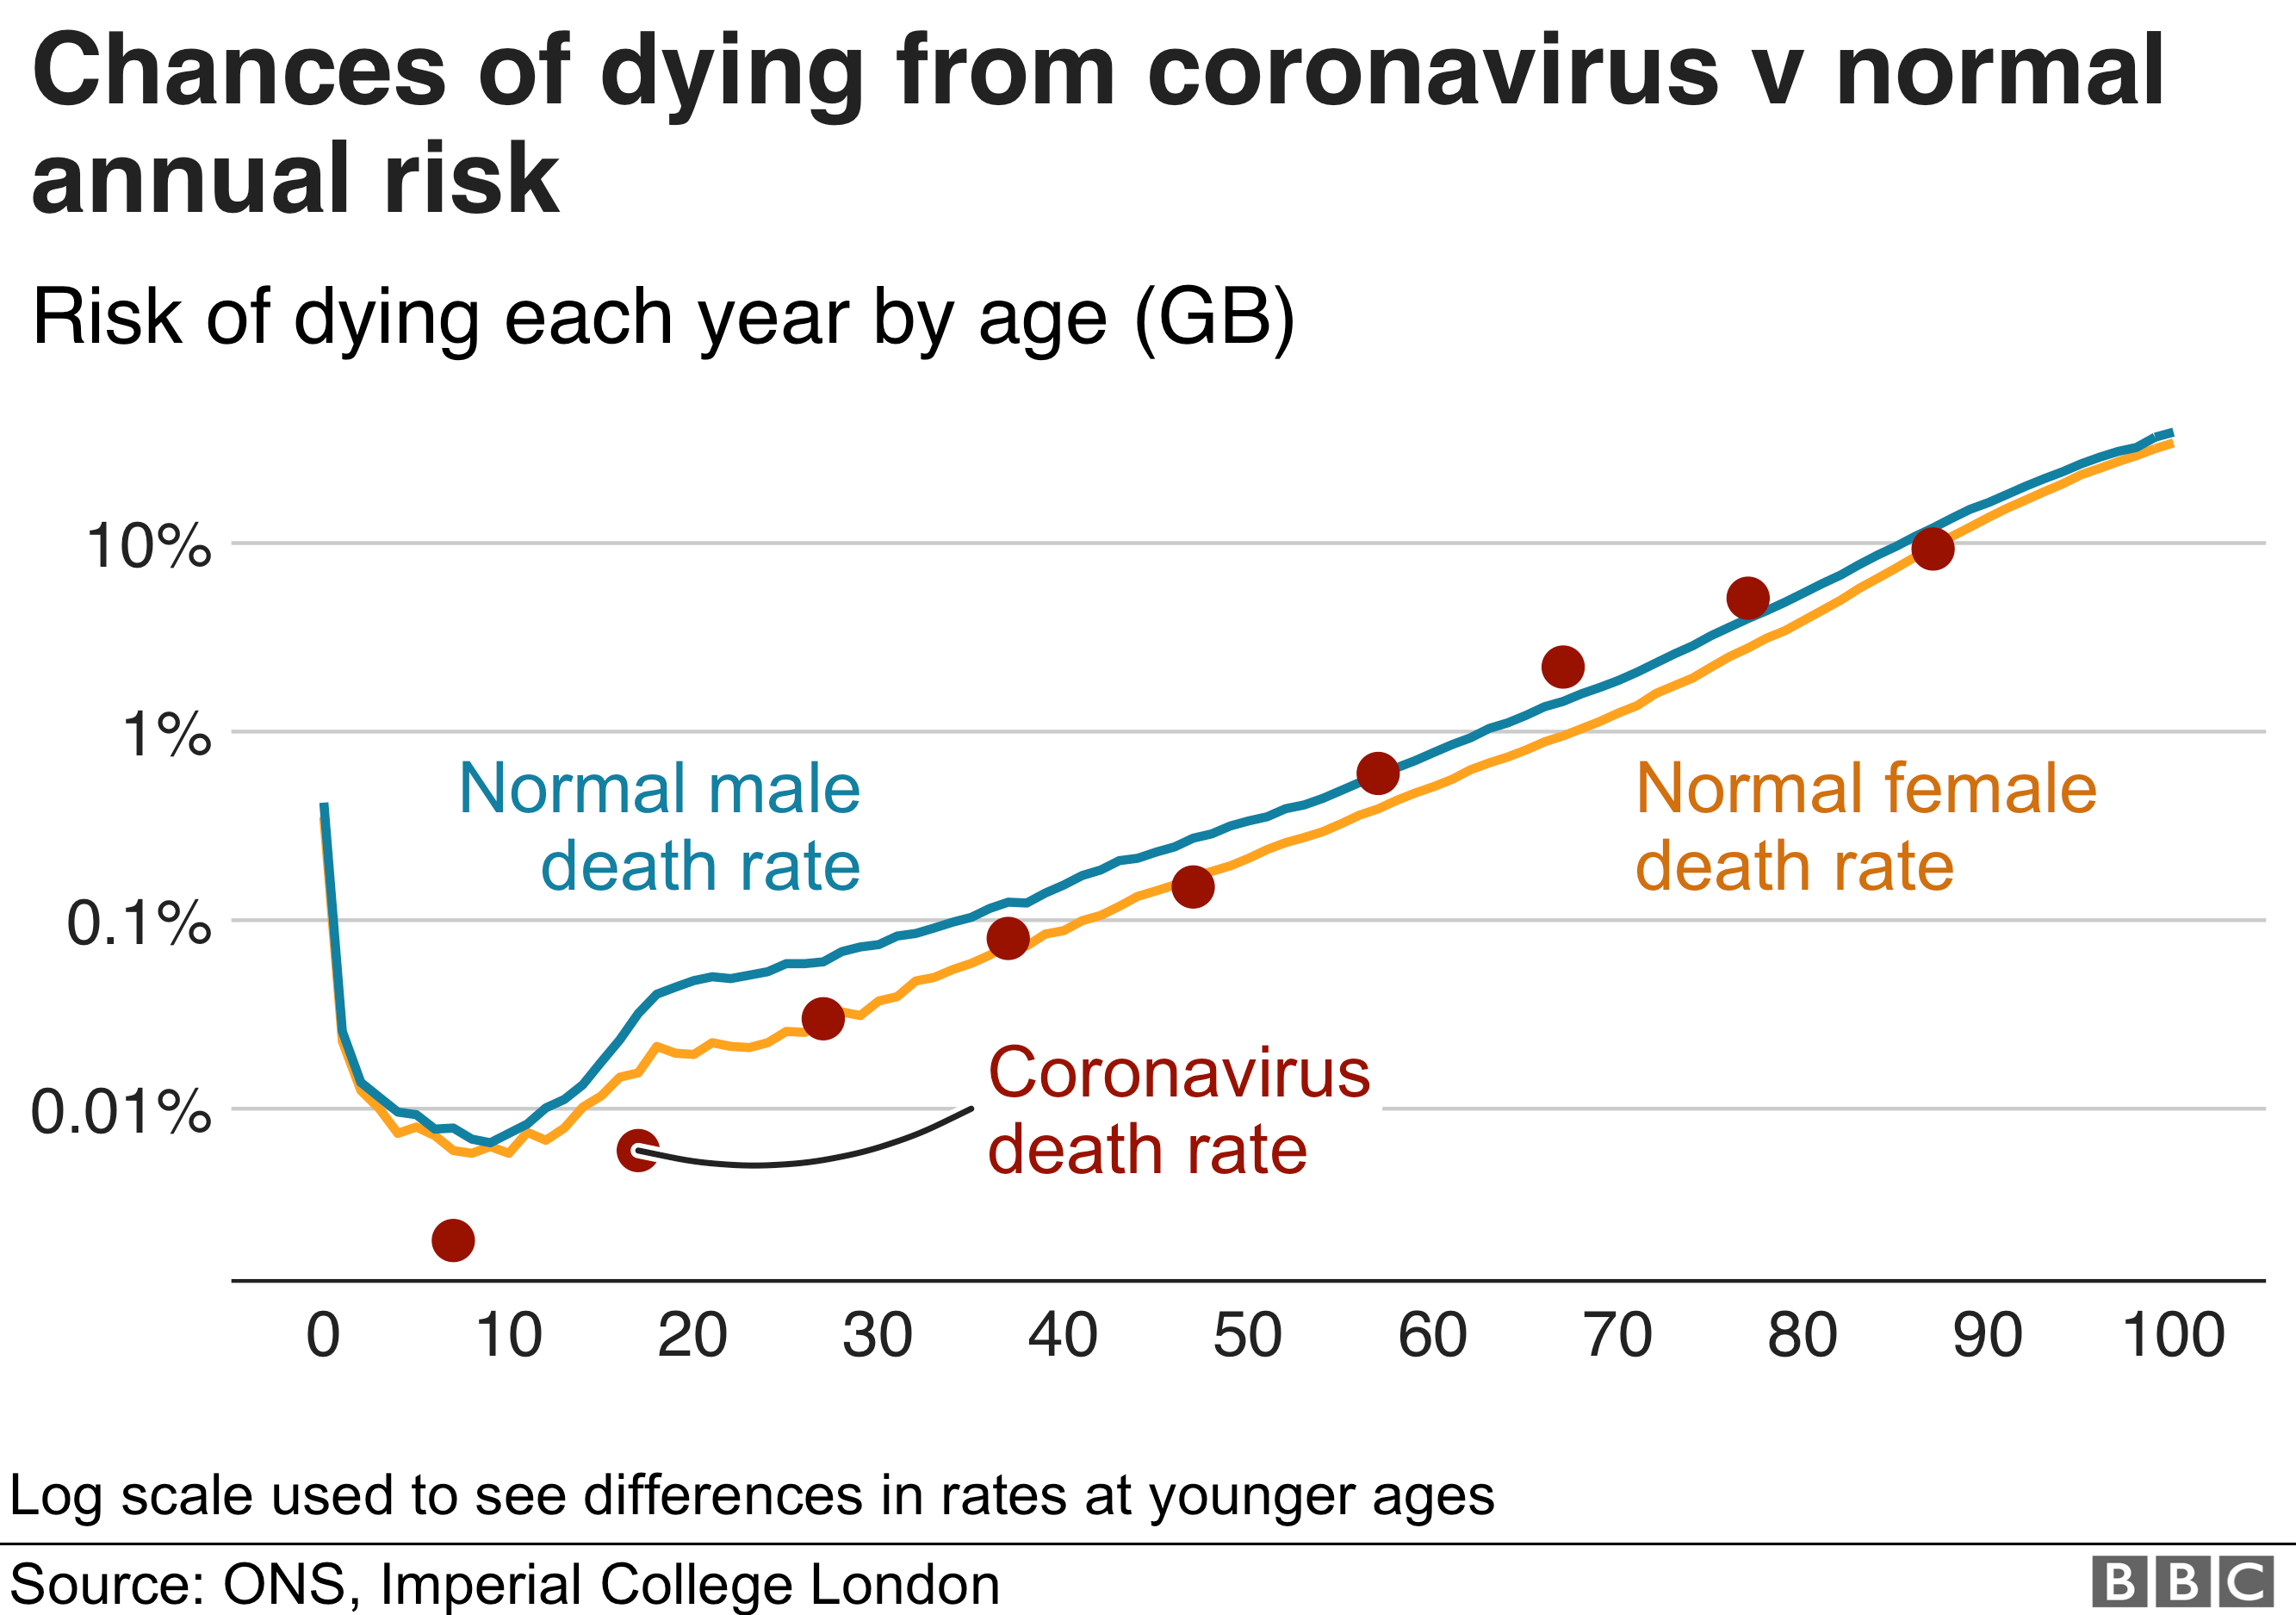 Chances of dying from coronavirus v normal annual risk